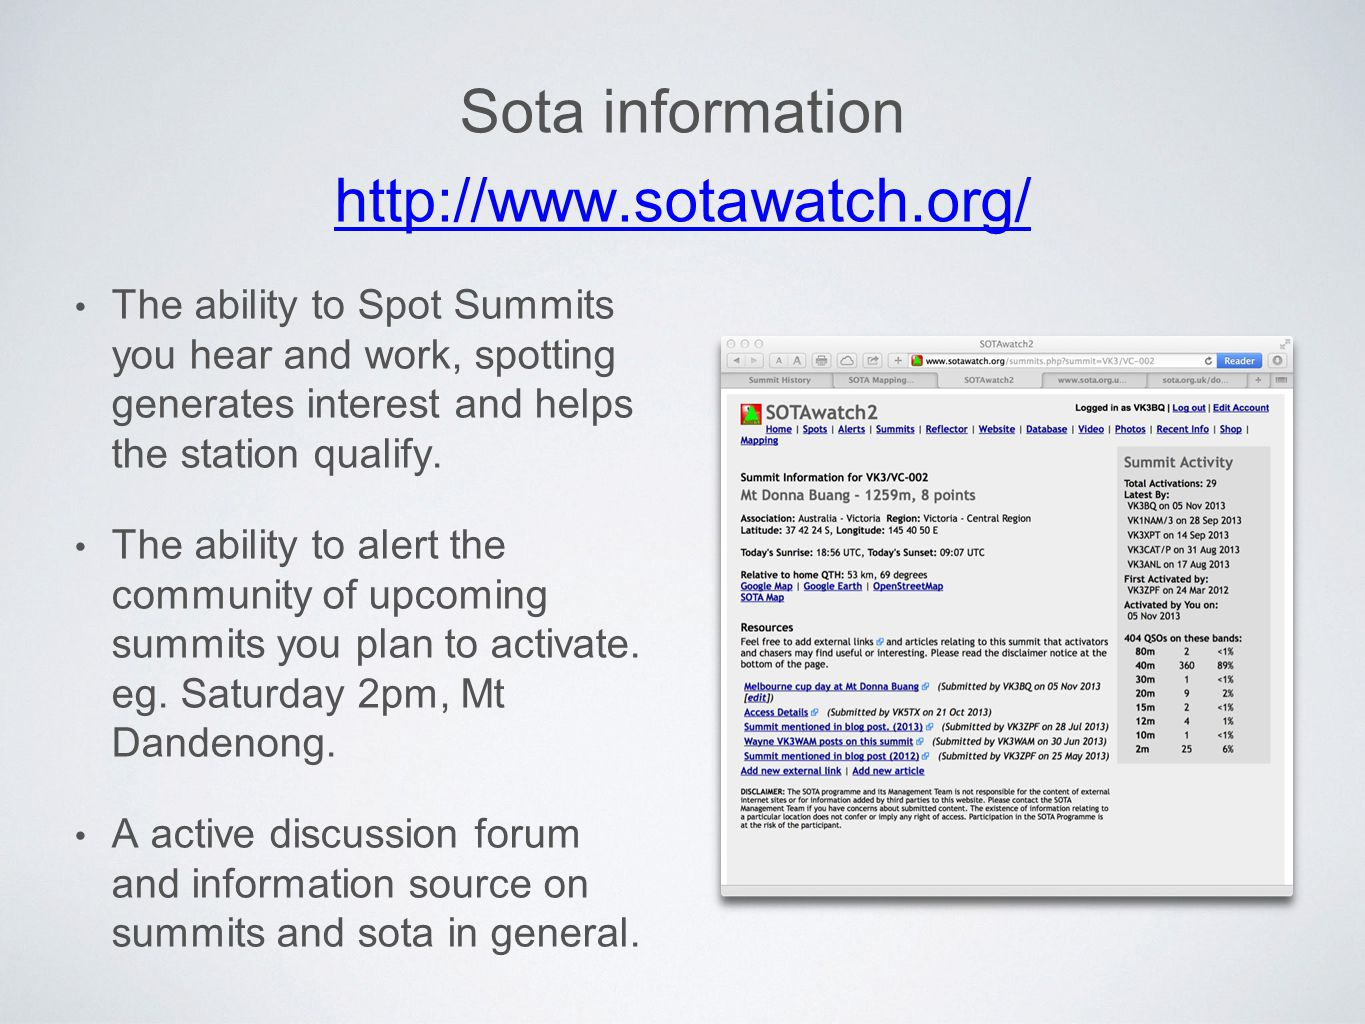 Sota information http://www.sotawatch.org/ http://www.sotawatch.org/ The ability to Spot Summits you hear and work, spotting generates interest and helps the station qualify.